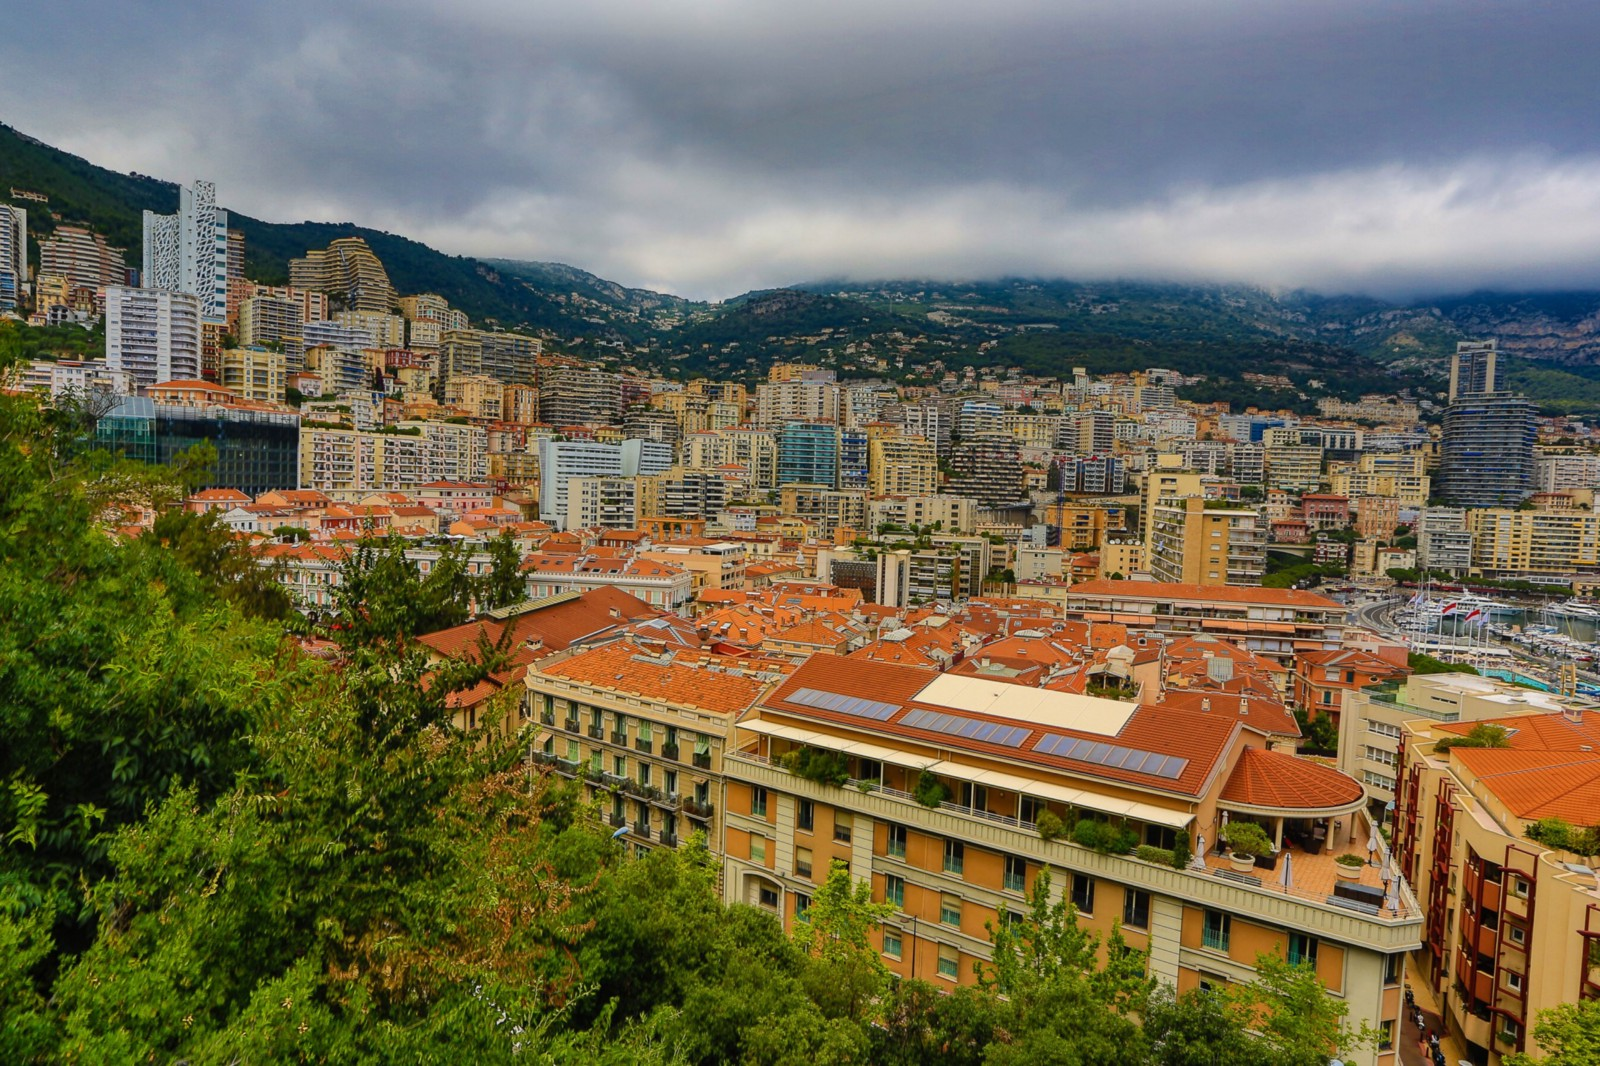 Monaco Is Only 9 Kilometres From Nice But They Are A Windy Slow Kind Of Kilometre Run Along The Coast Road And Give Some Great Views